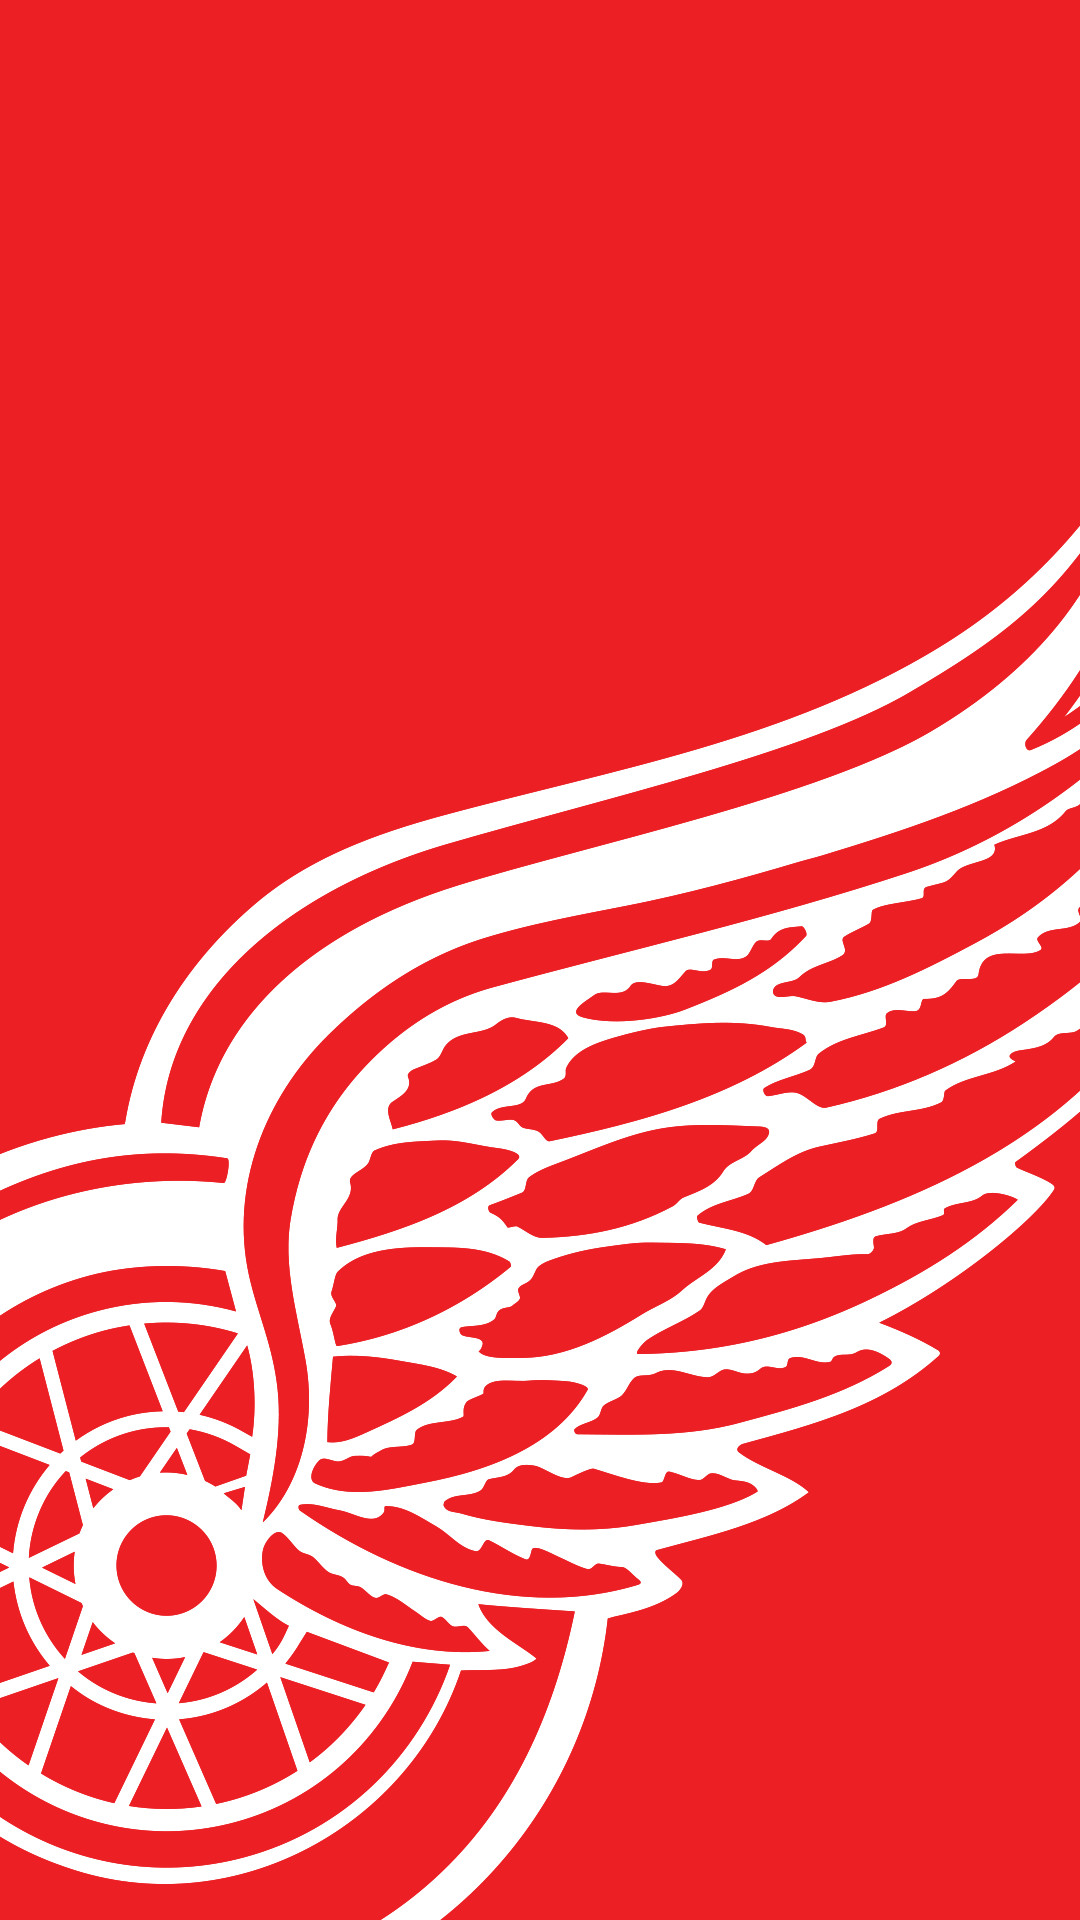 1080x1920 Red Wings Mobile Wallpaper - WallpaperSafari Download Detroit ...